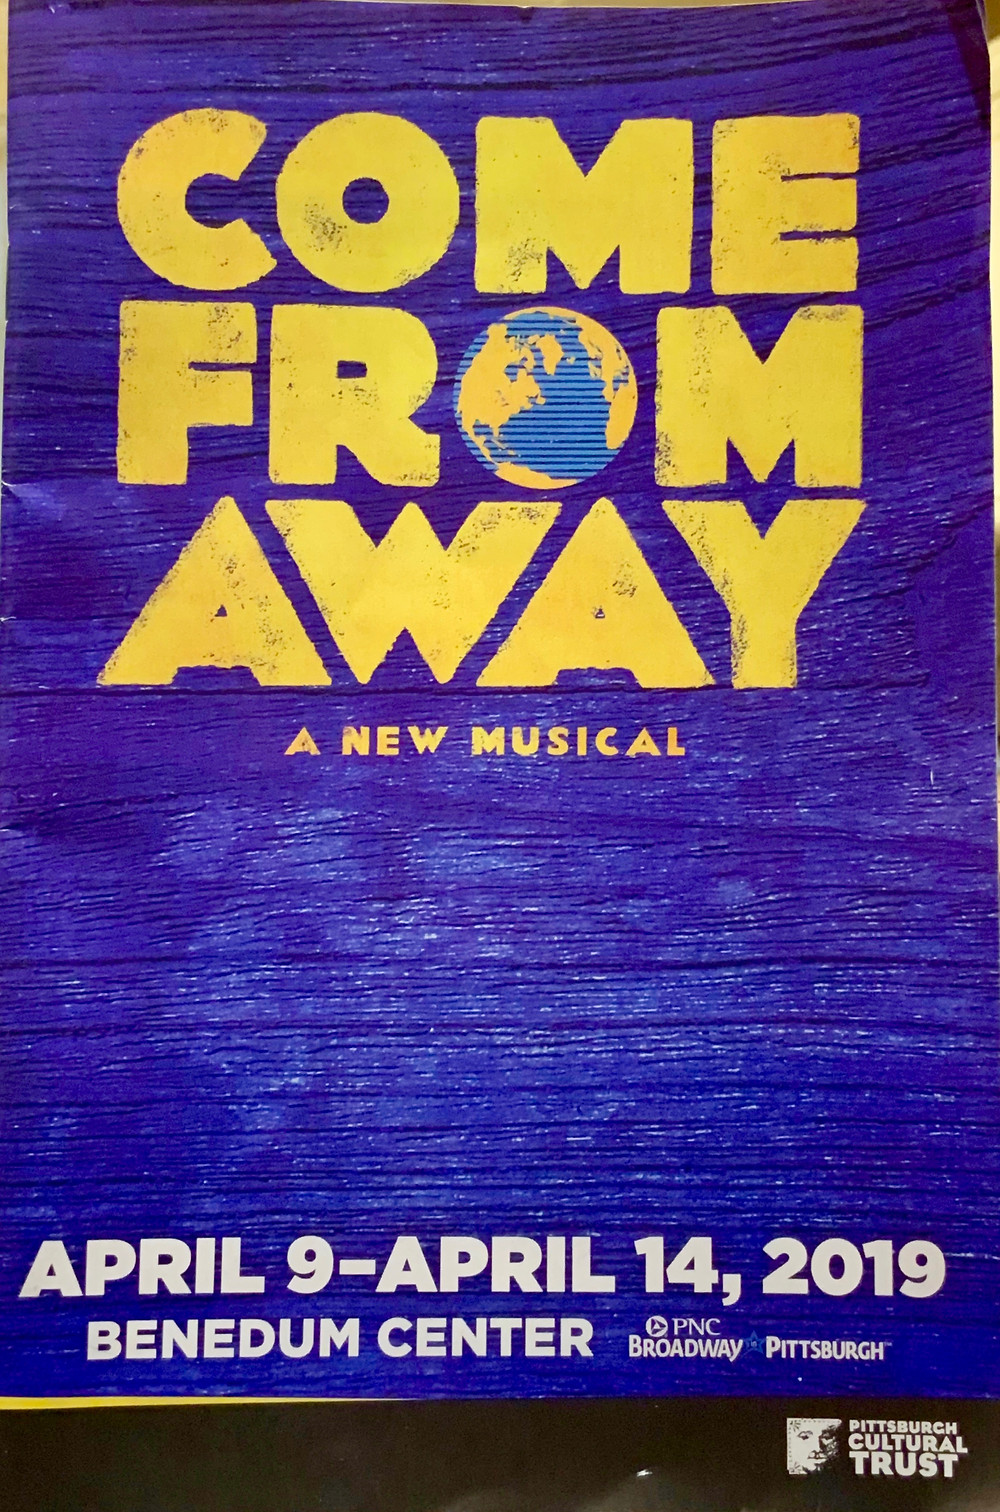 the program from the traveling Broadway musical Come From Away at the Benedum Center in Pittsburgh